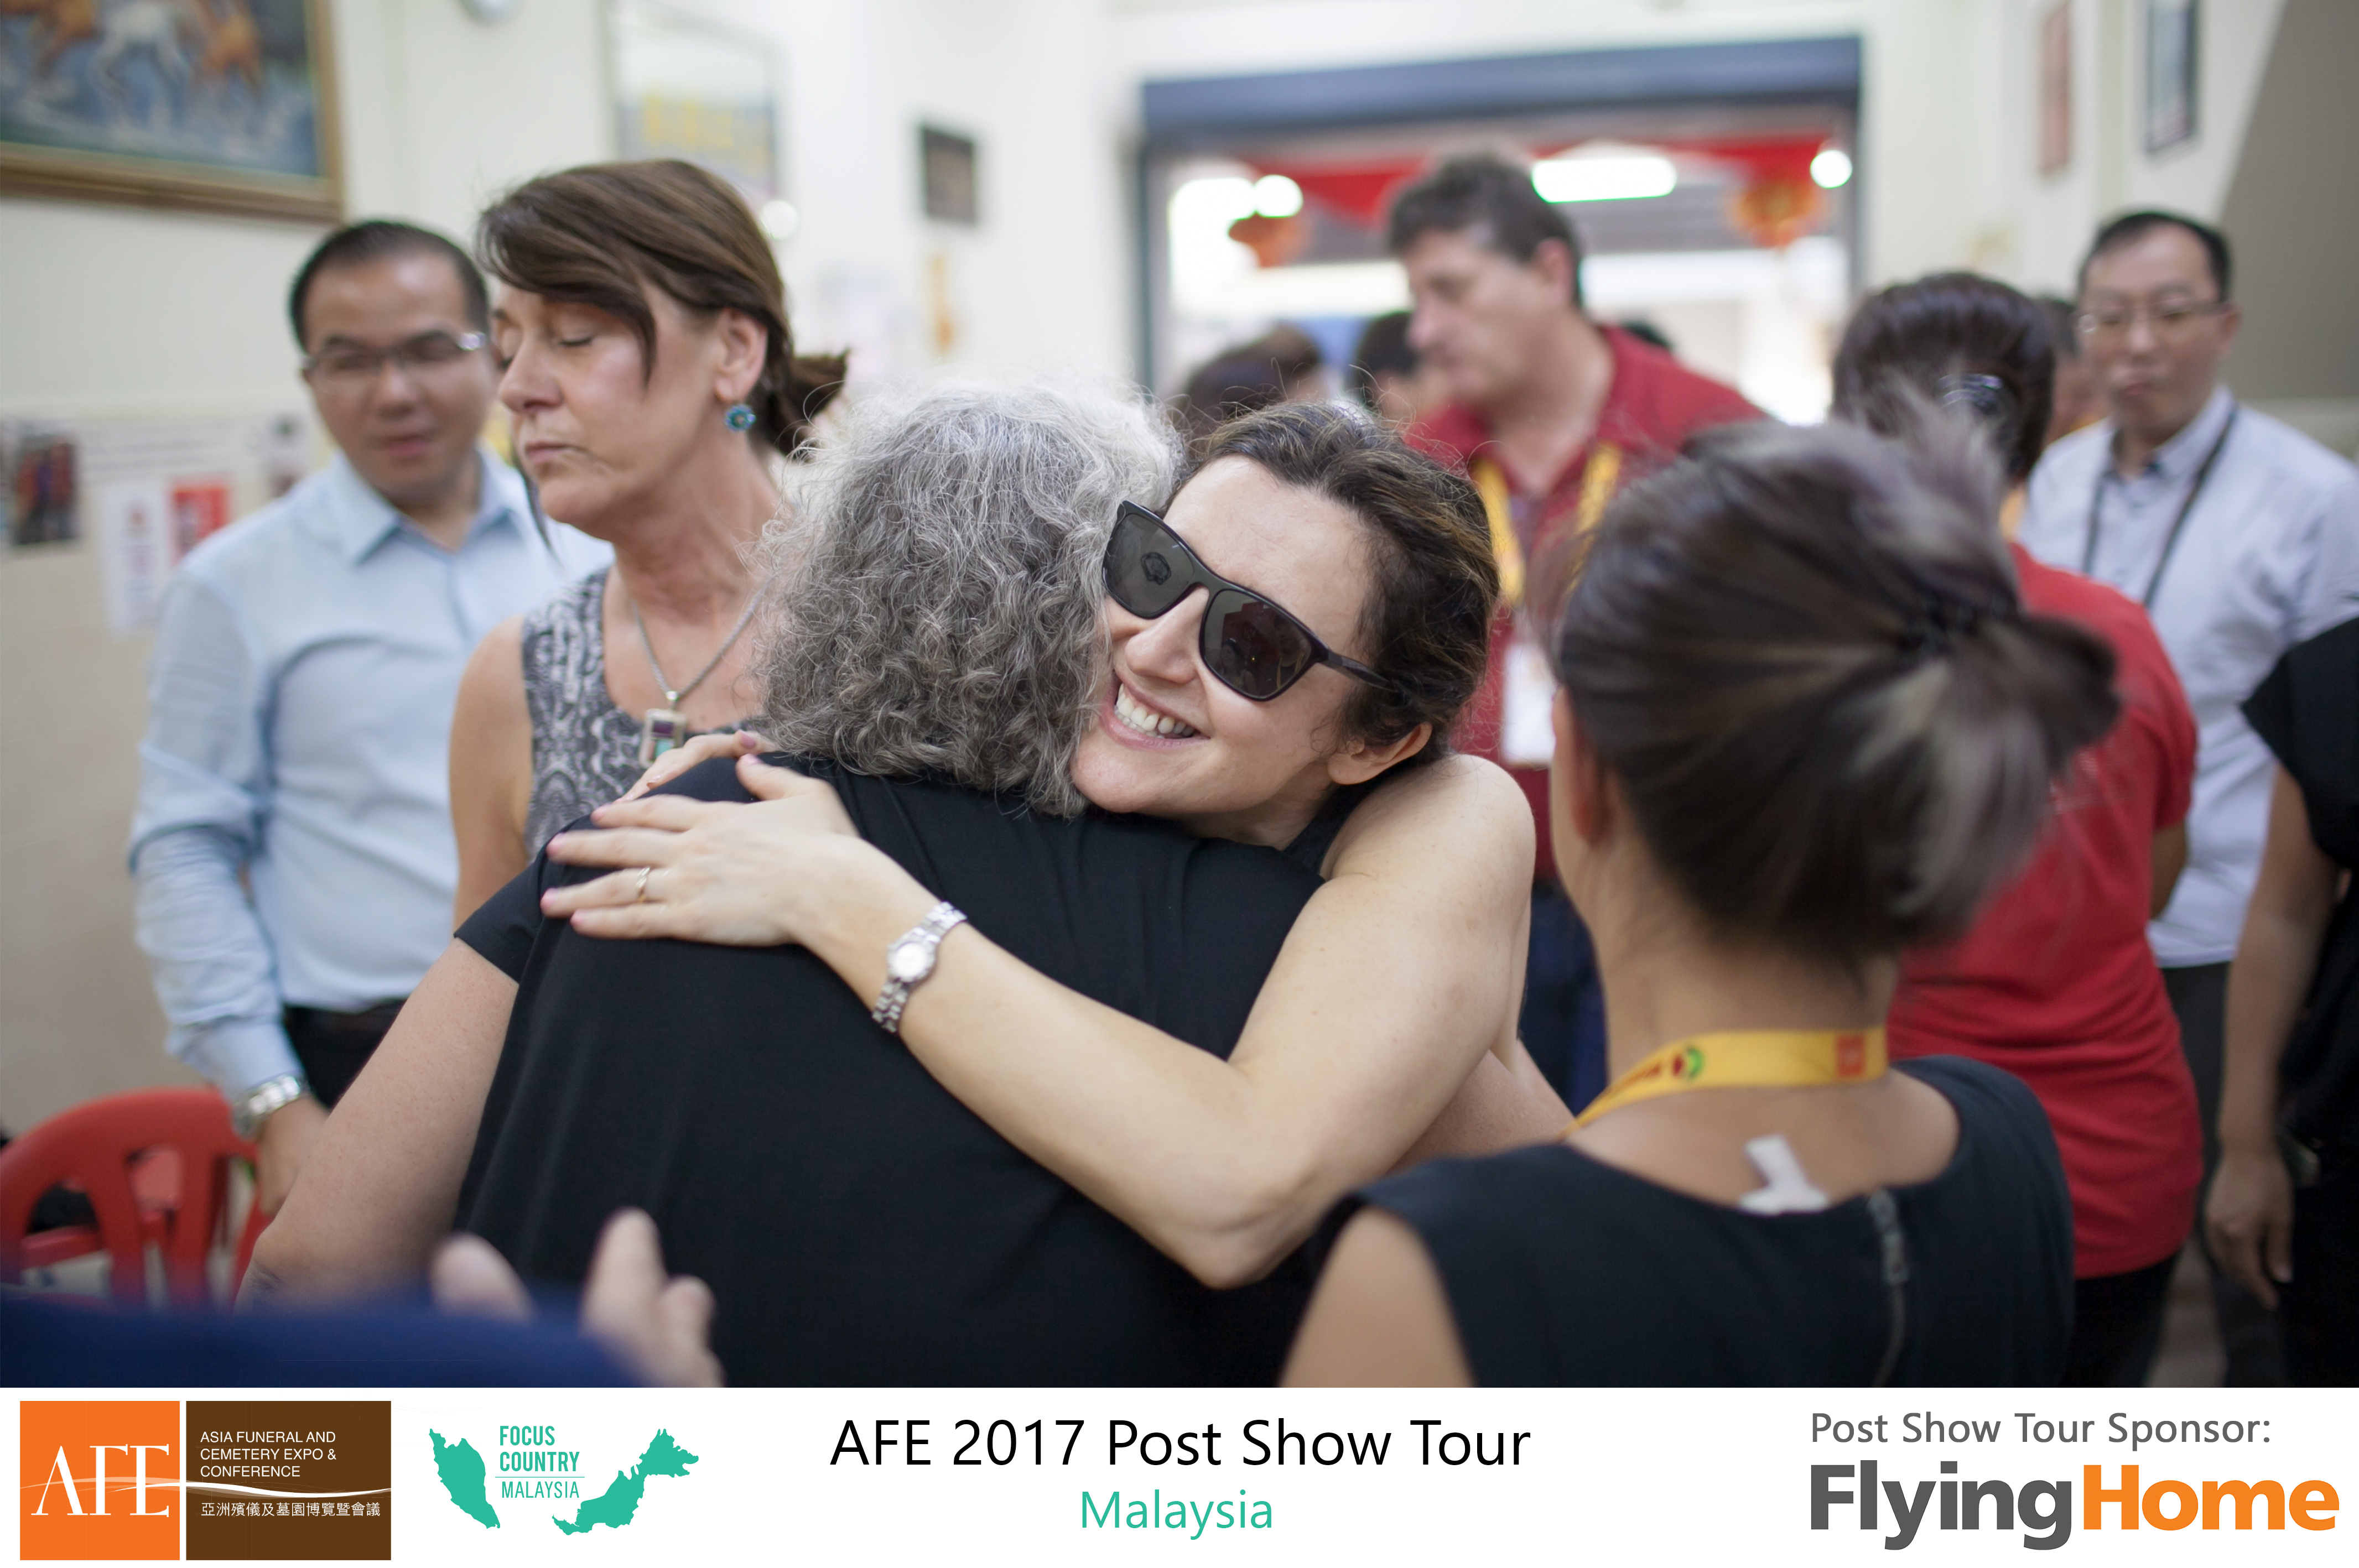 AFE Post Show Tour 2017 Day 4 - 29